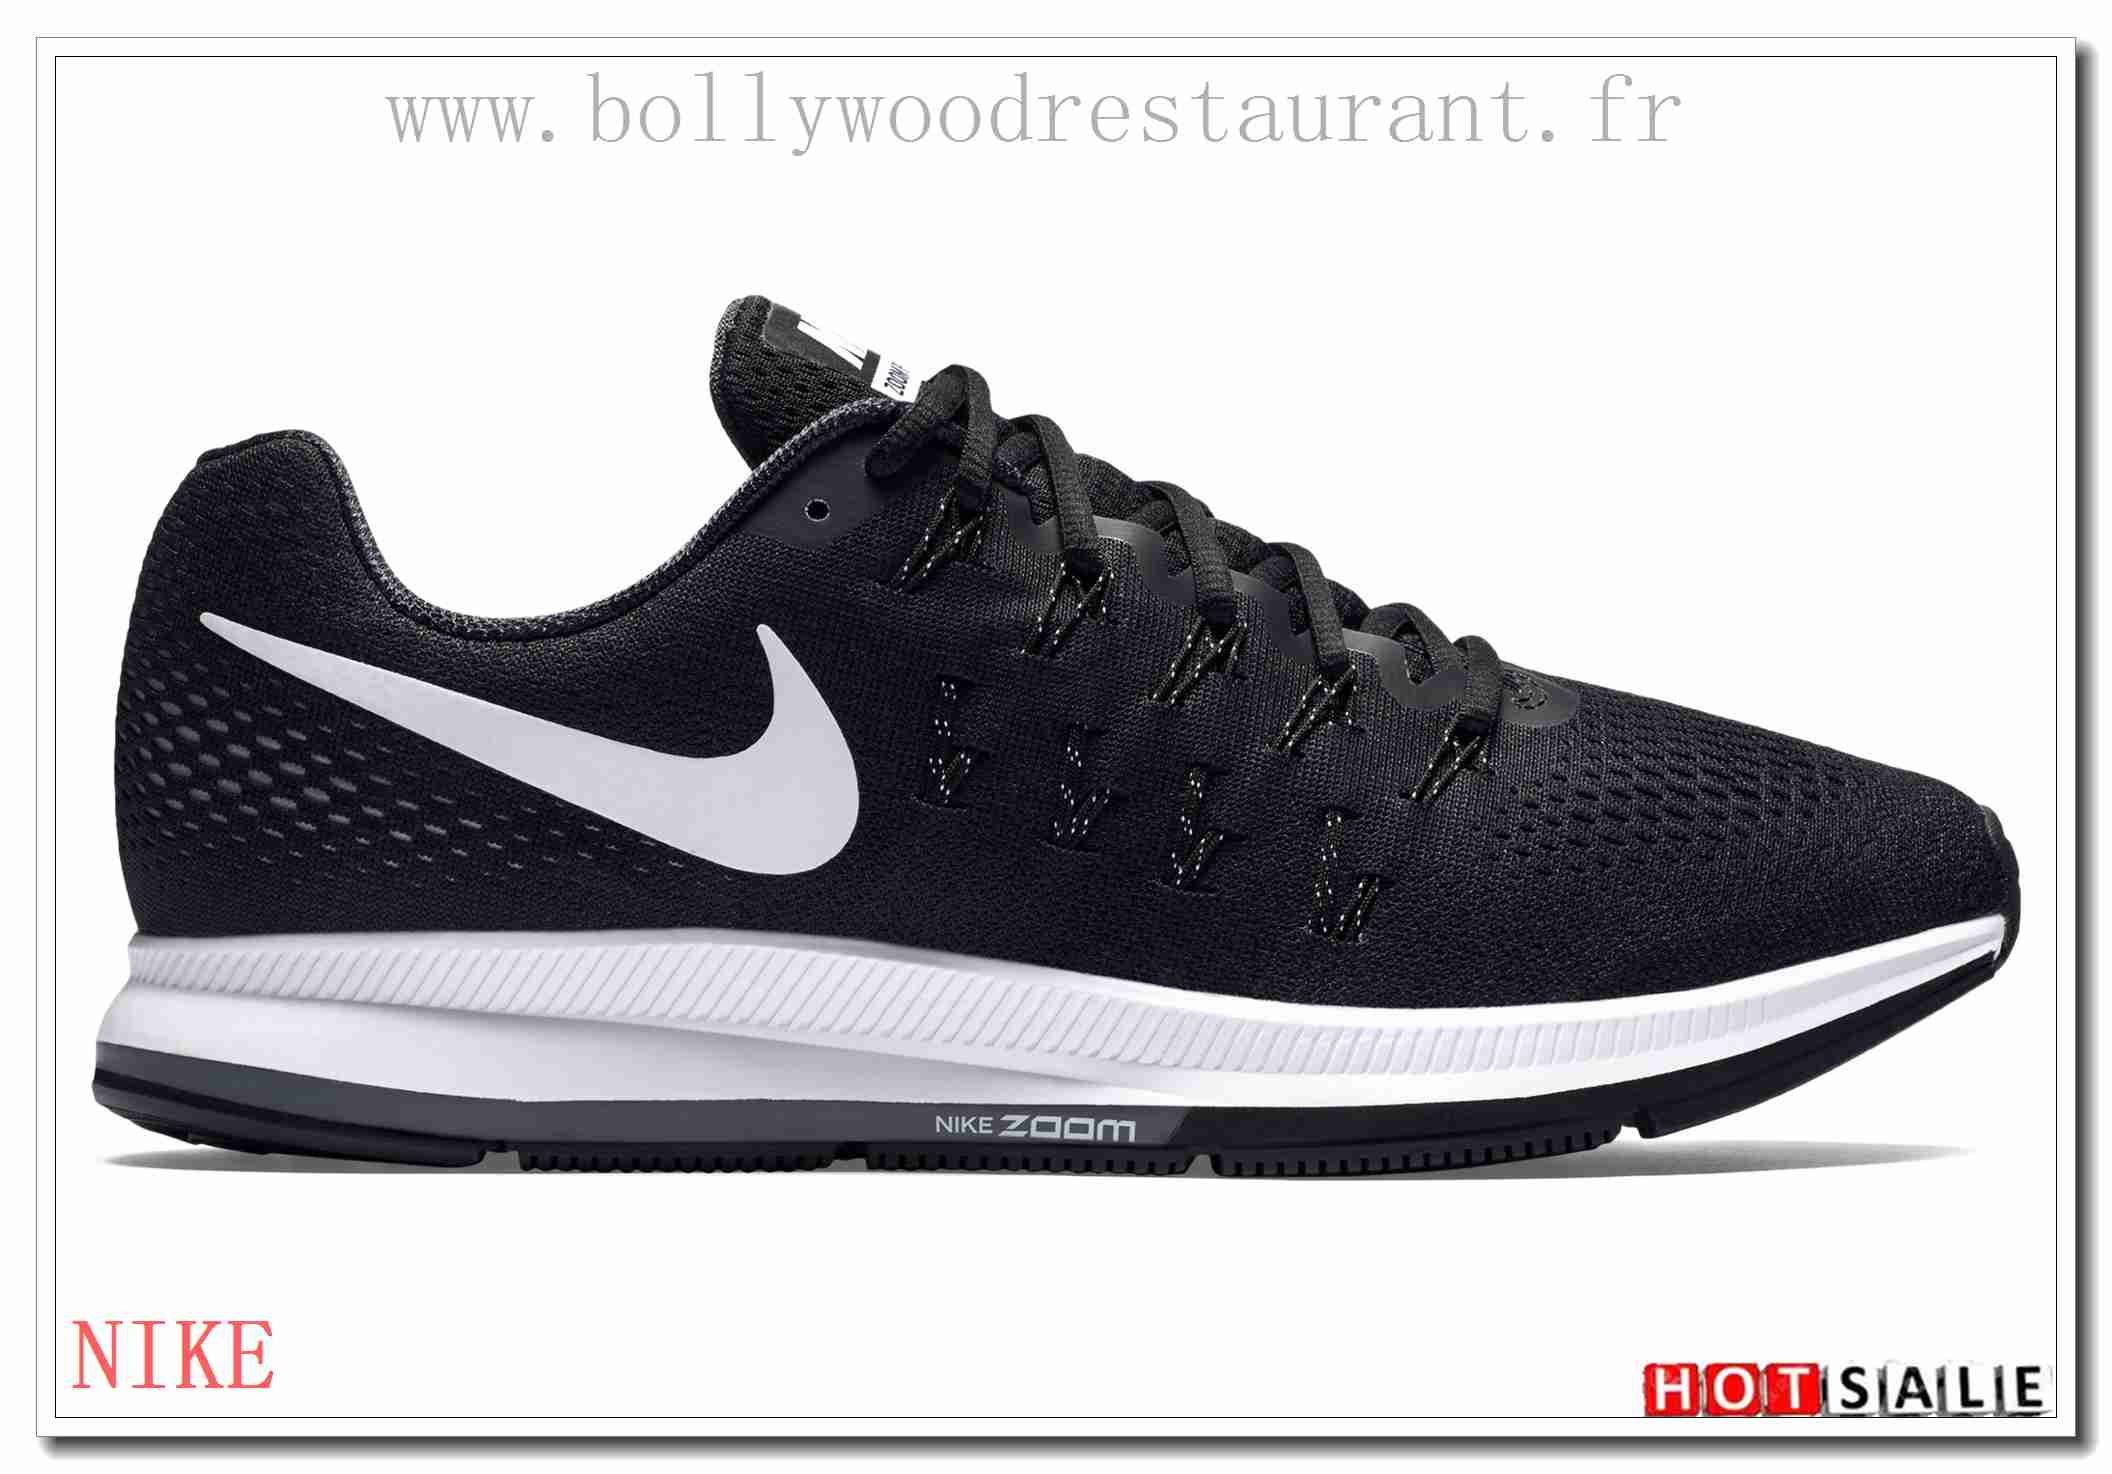 nouvelle chaussure nike 2018